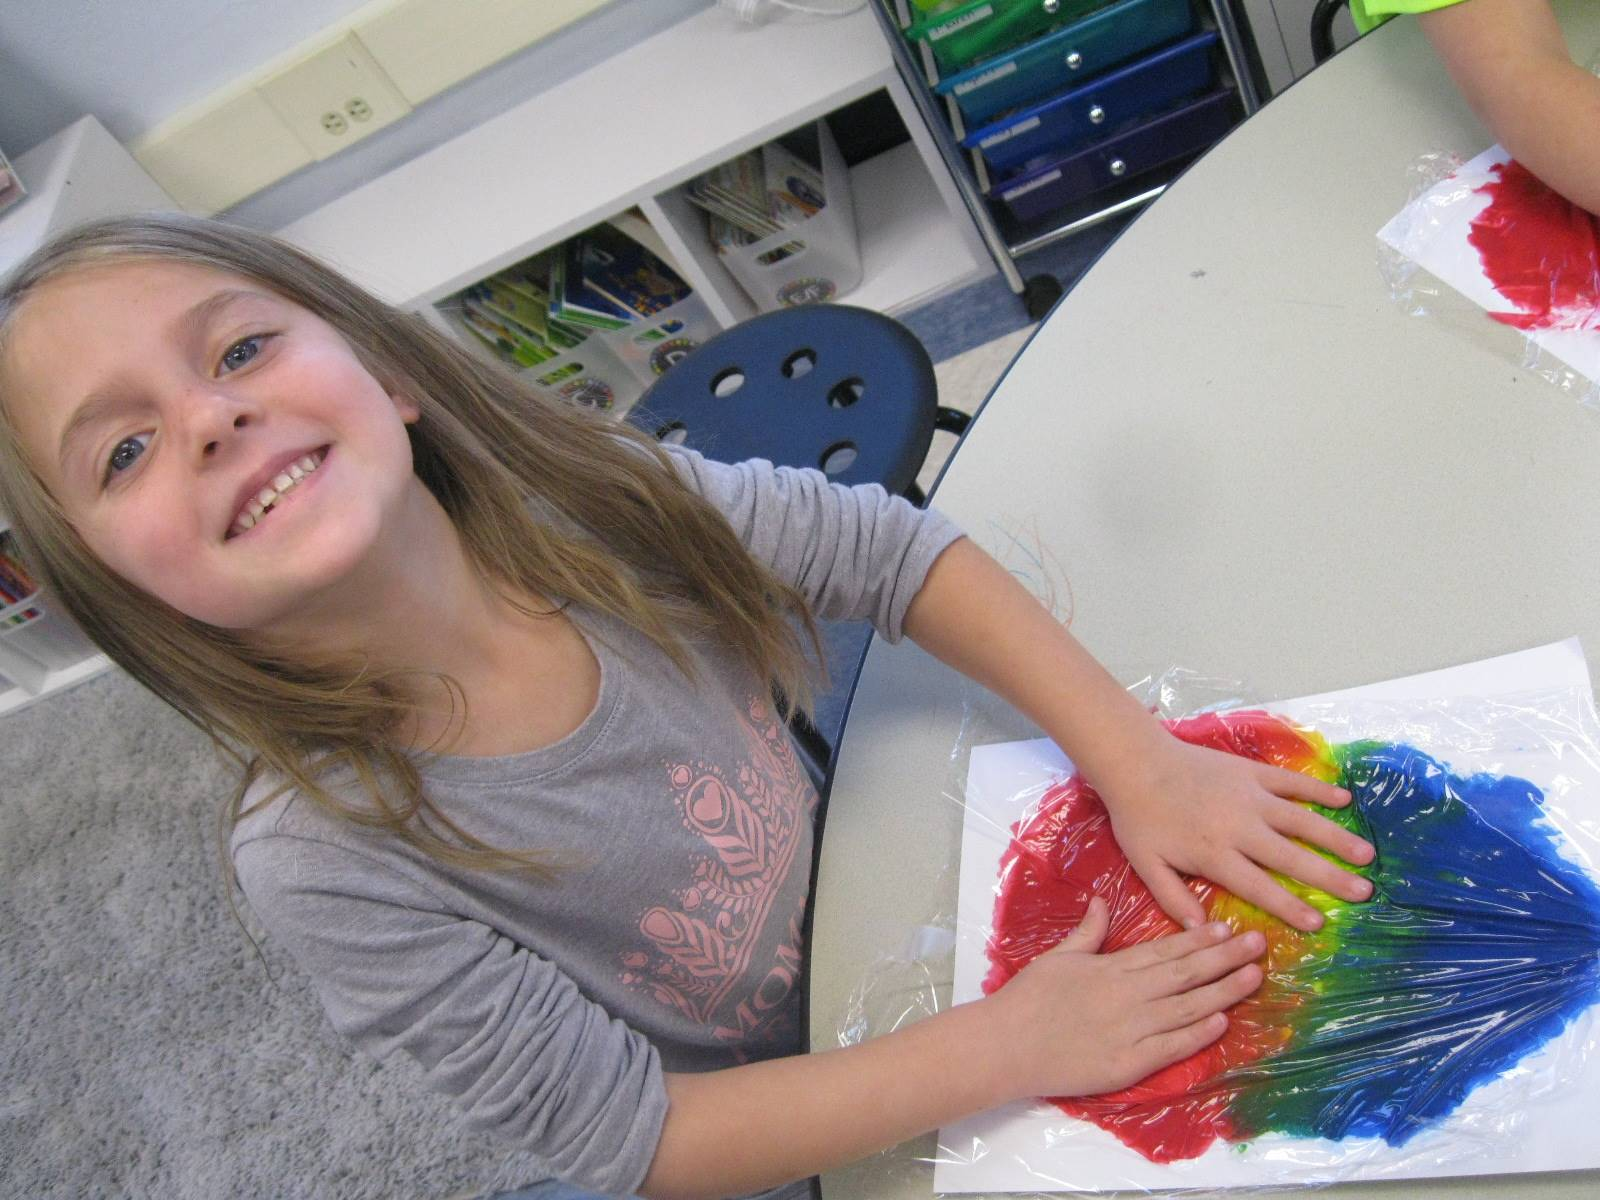 A student shows her art.